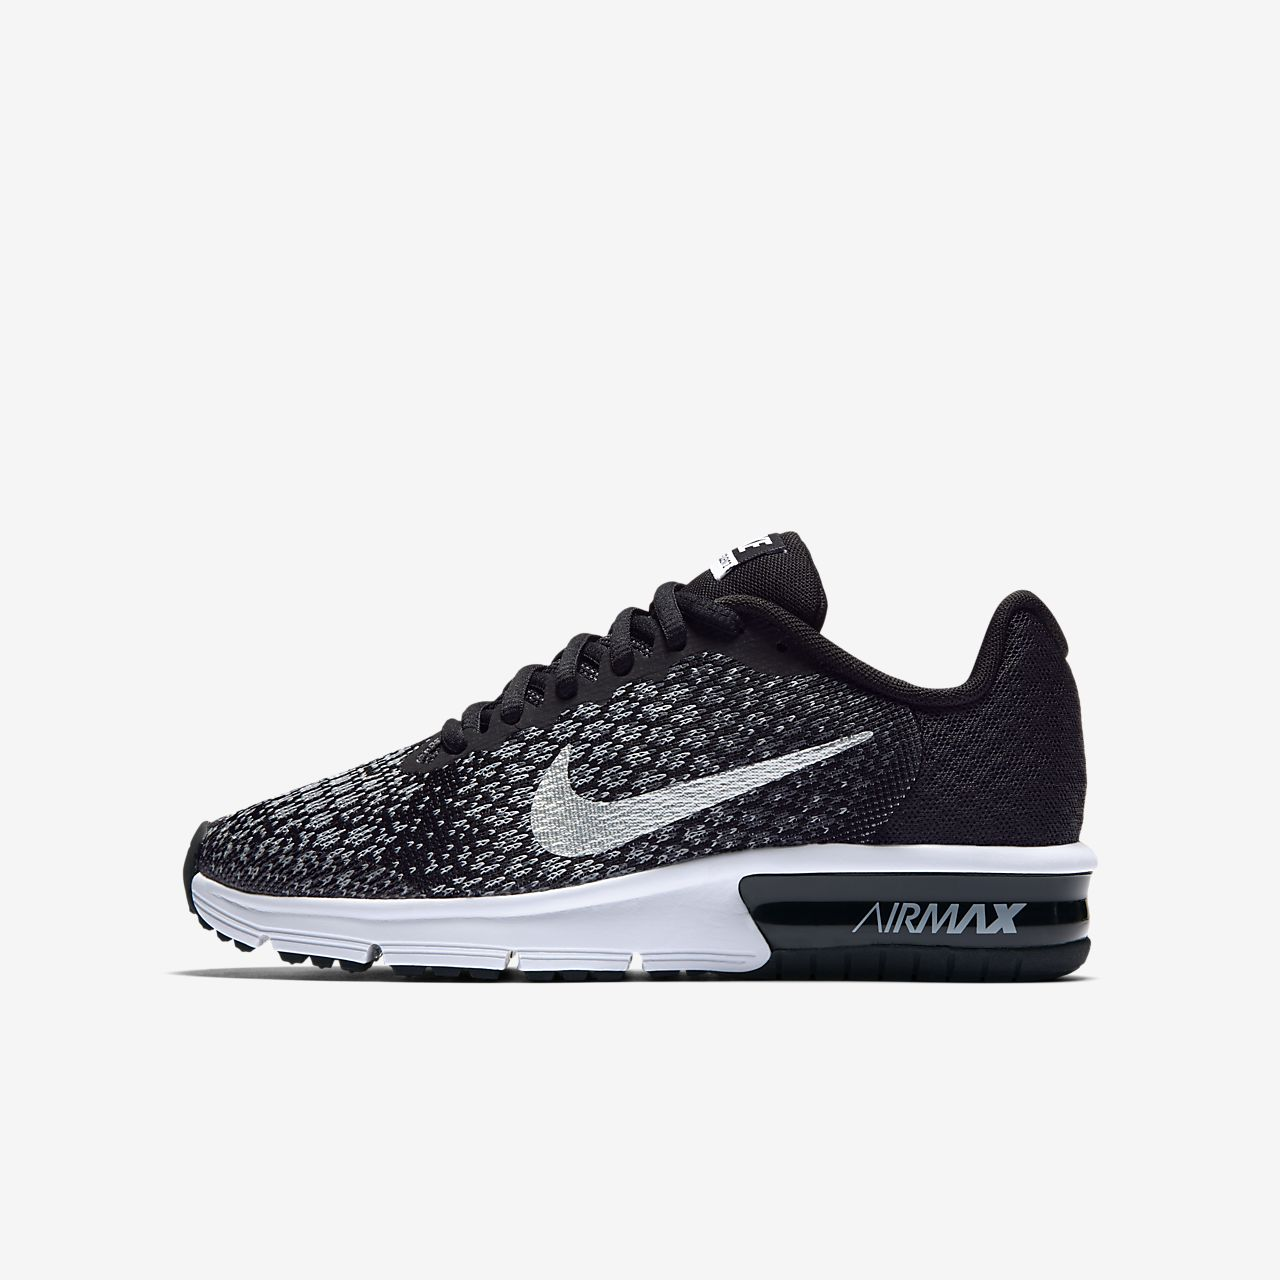 30243475df Nike Air Max Sequent 2 Older Kids' Running Shoe. Nike.com AU